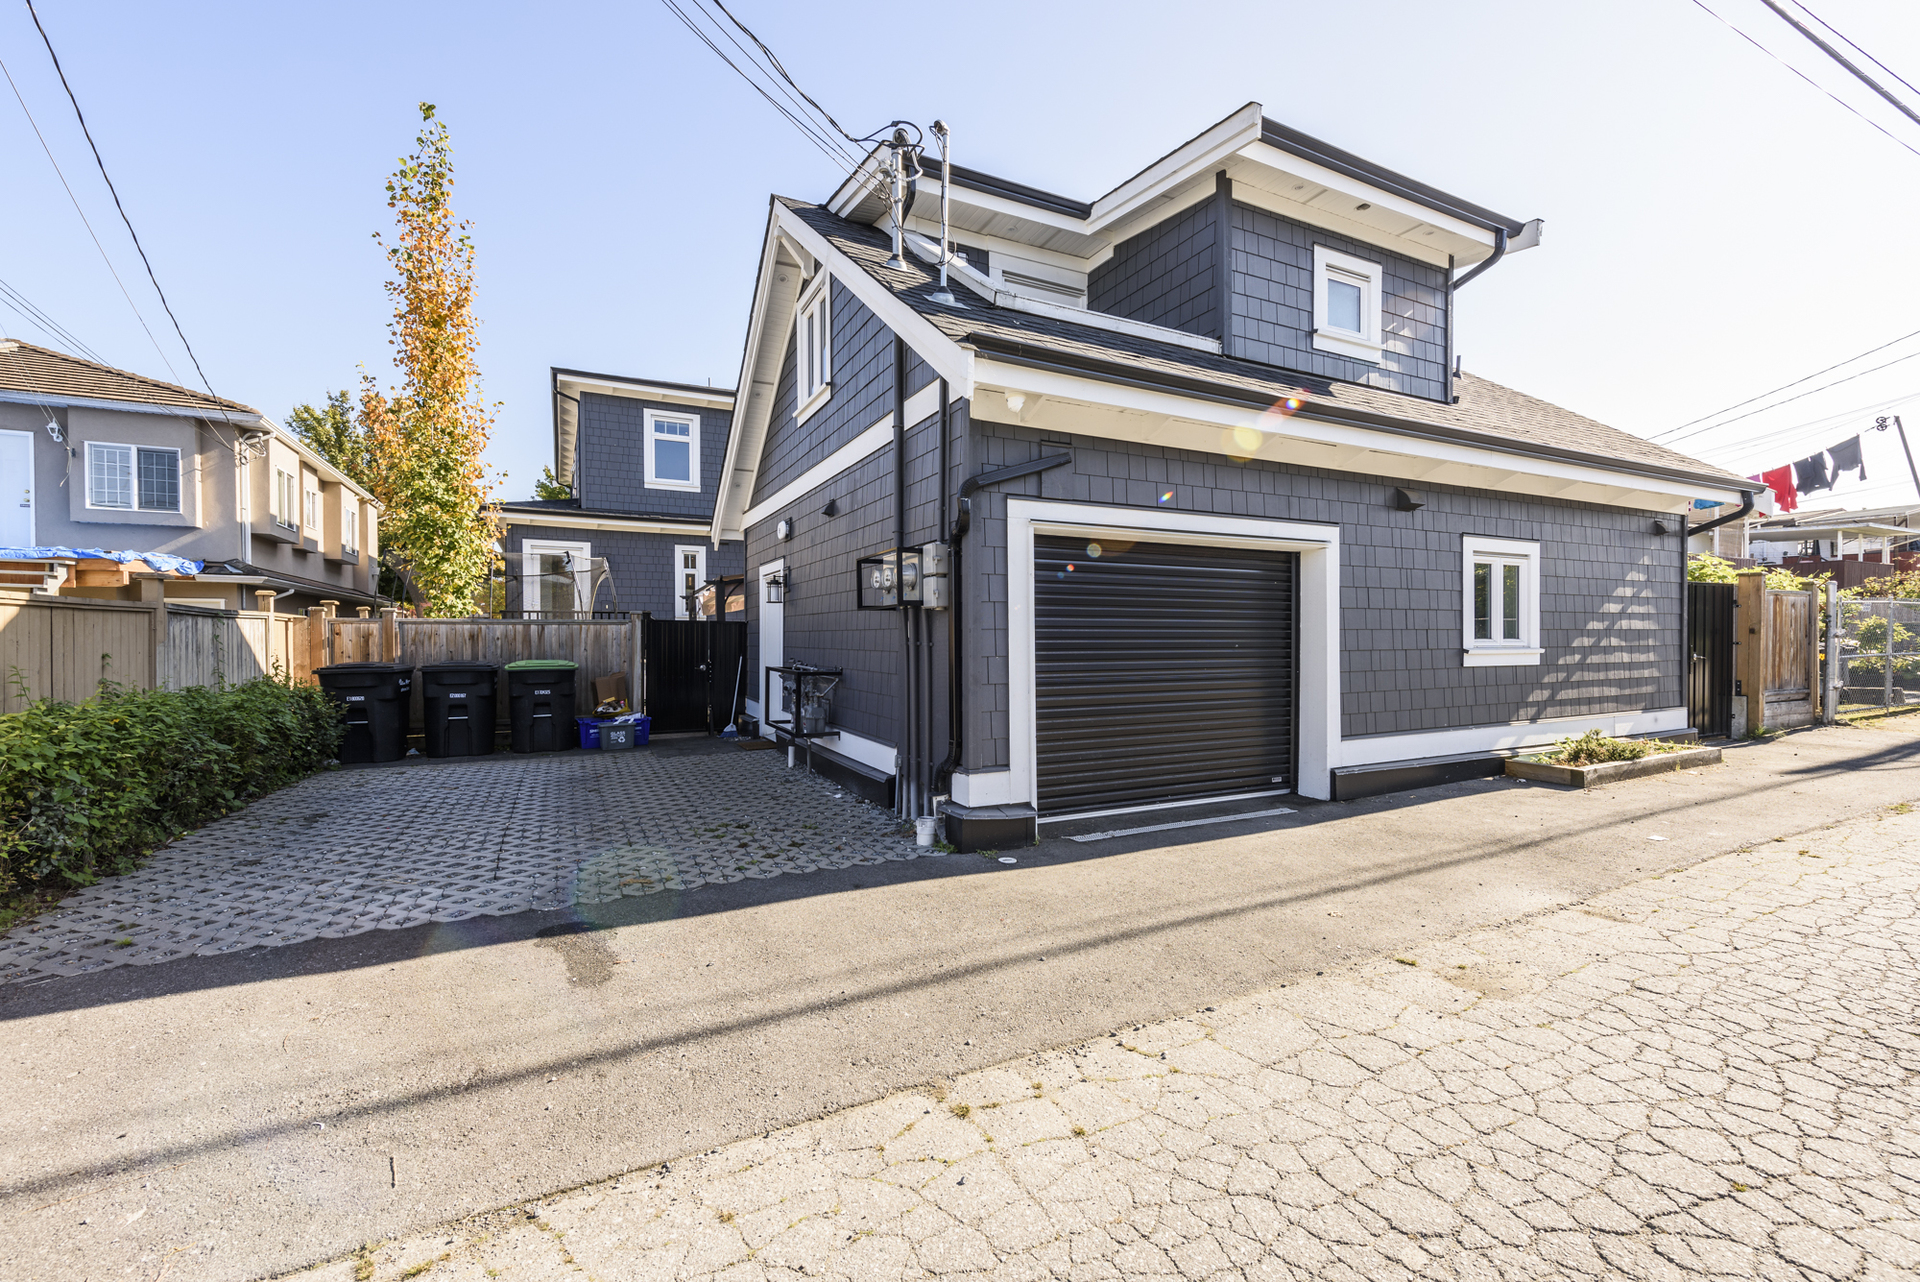 4609-culloden-ste-high-res-161 at 4609 Culloden Street, Knight, Vancouver East